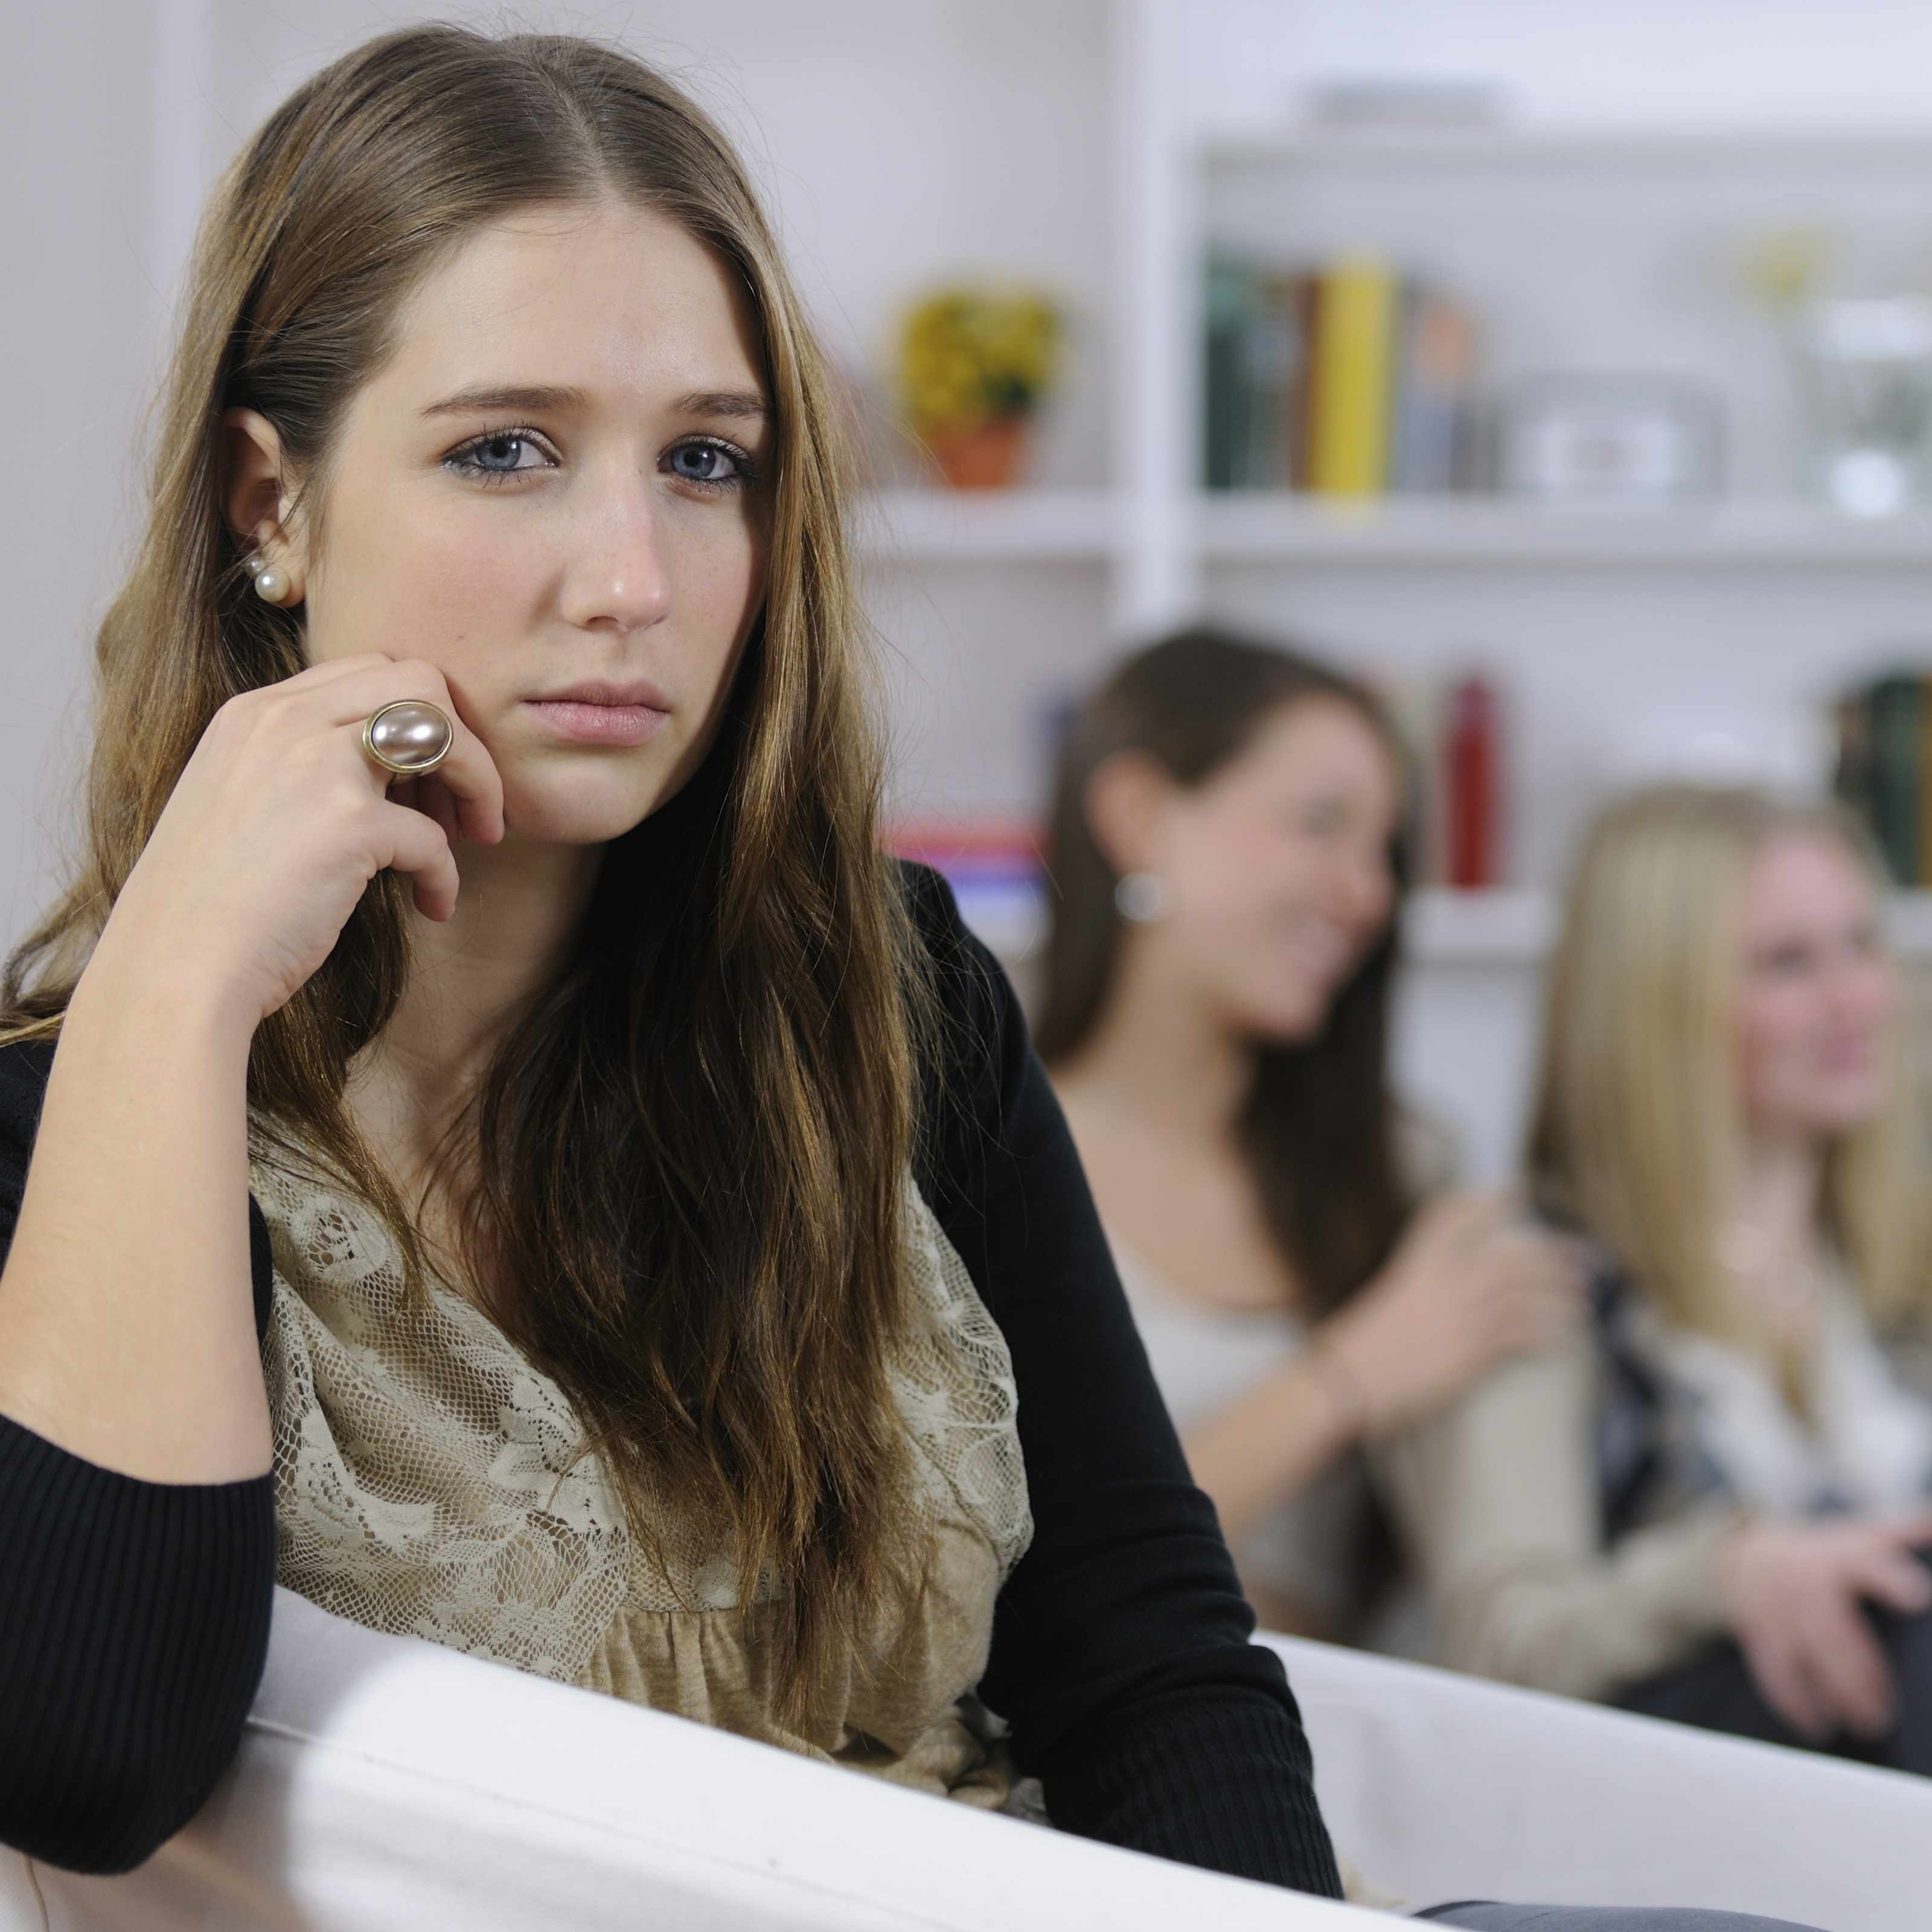 a young girl sitting on a couch sad, upset about being left out friends in background talking